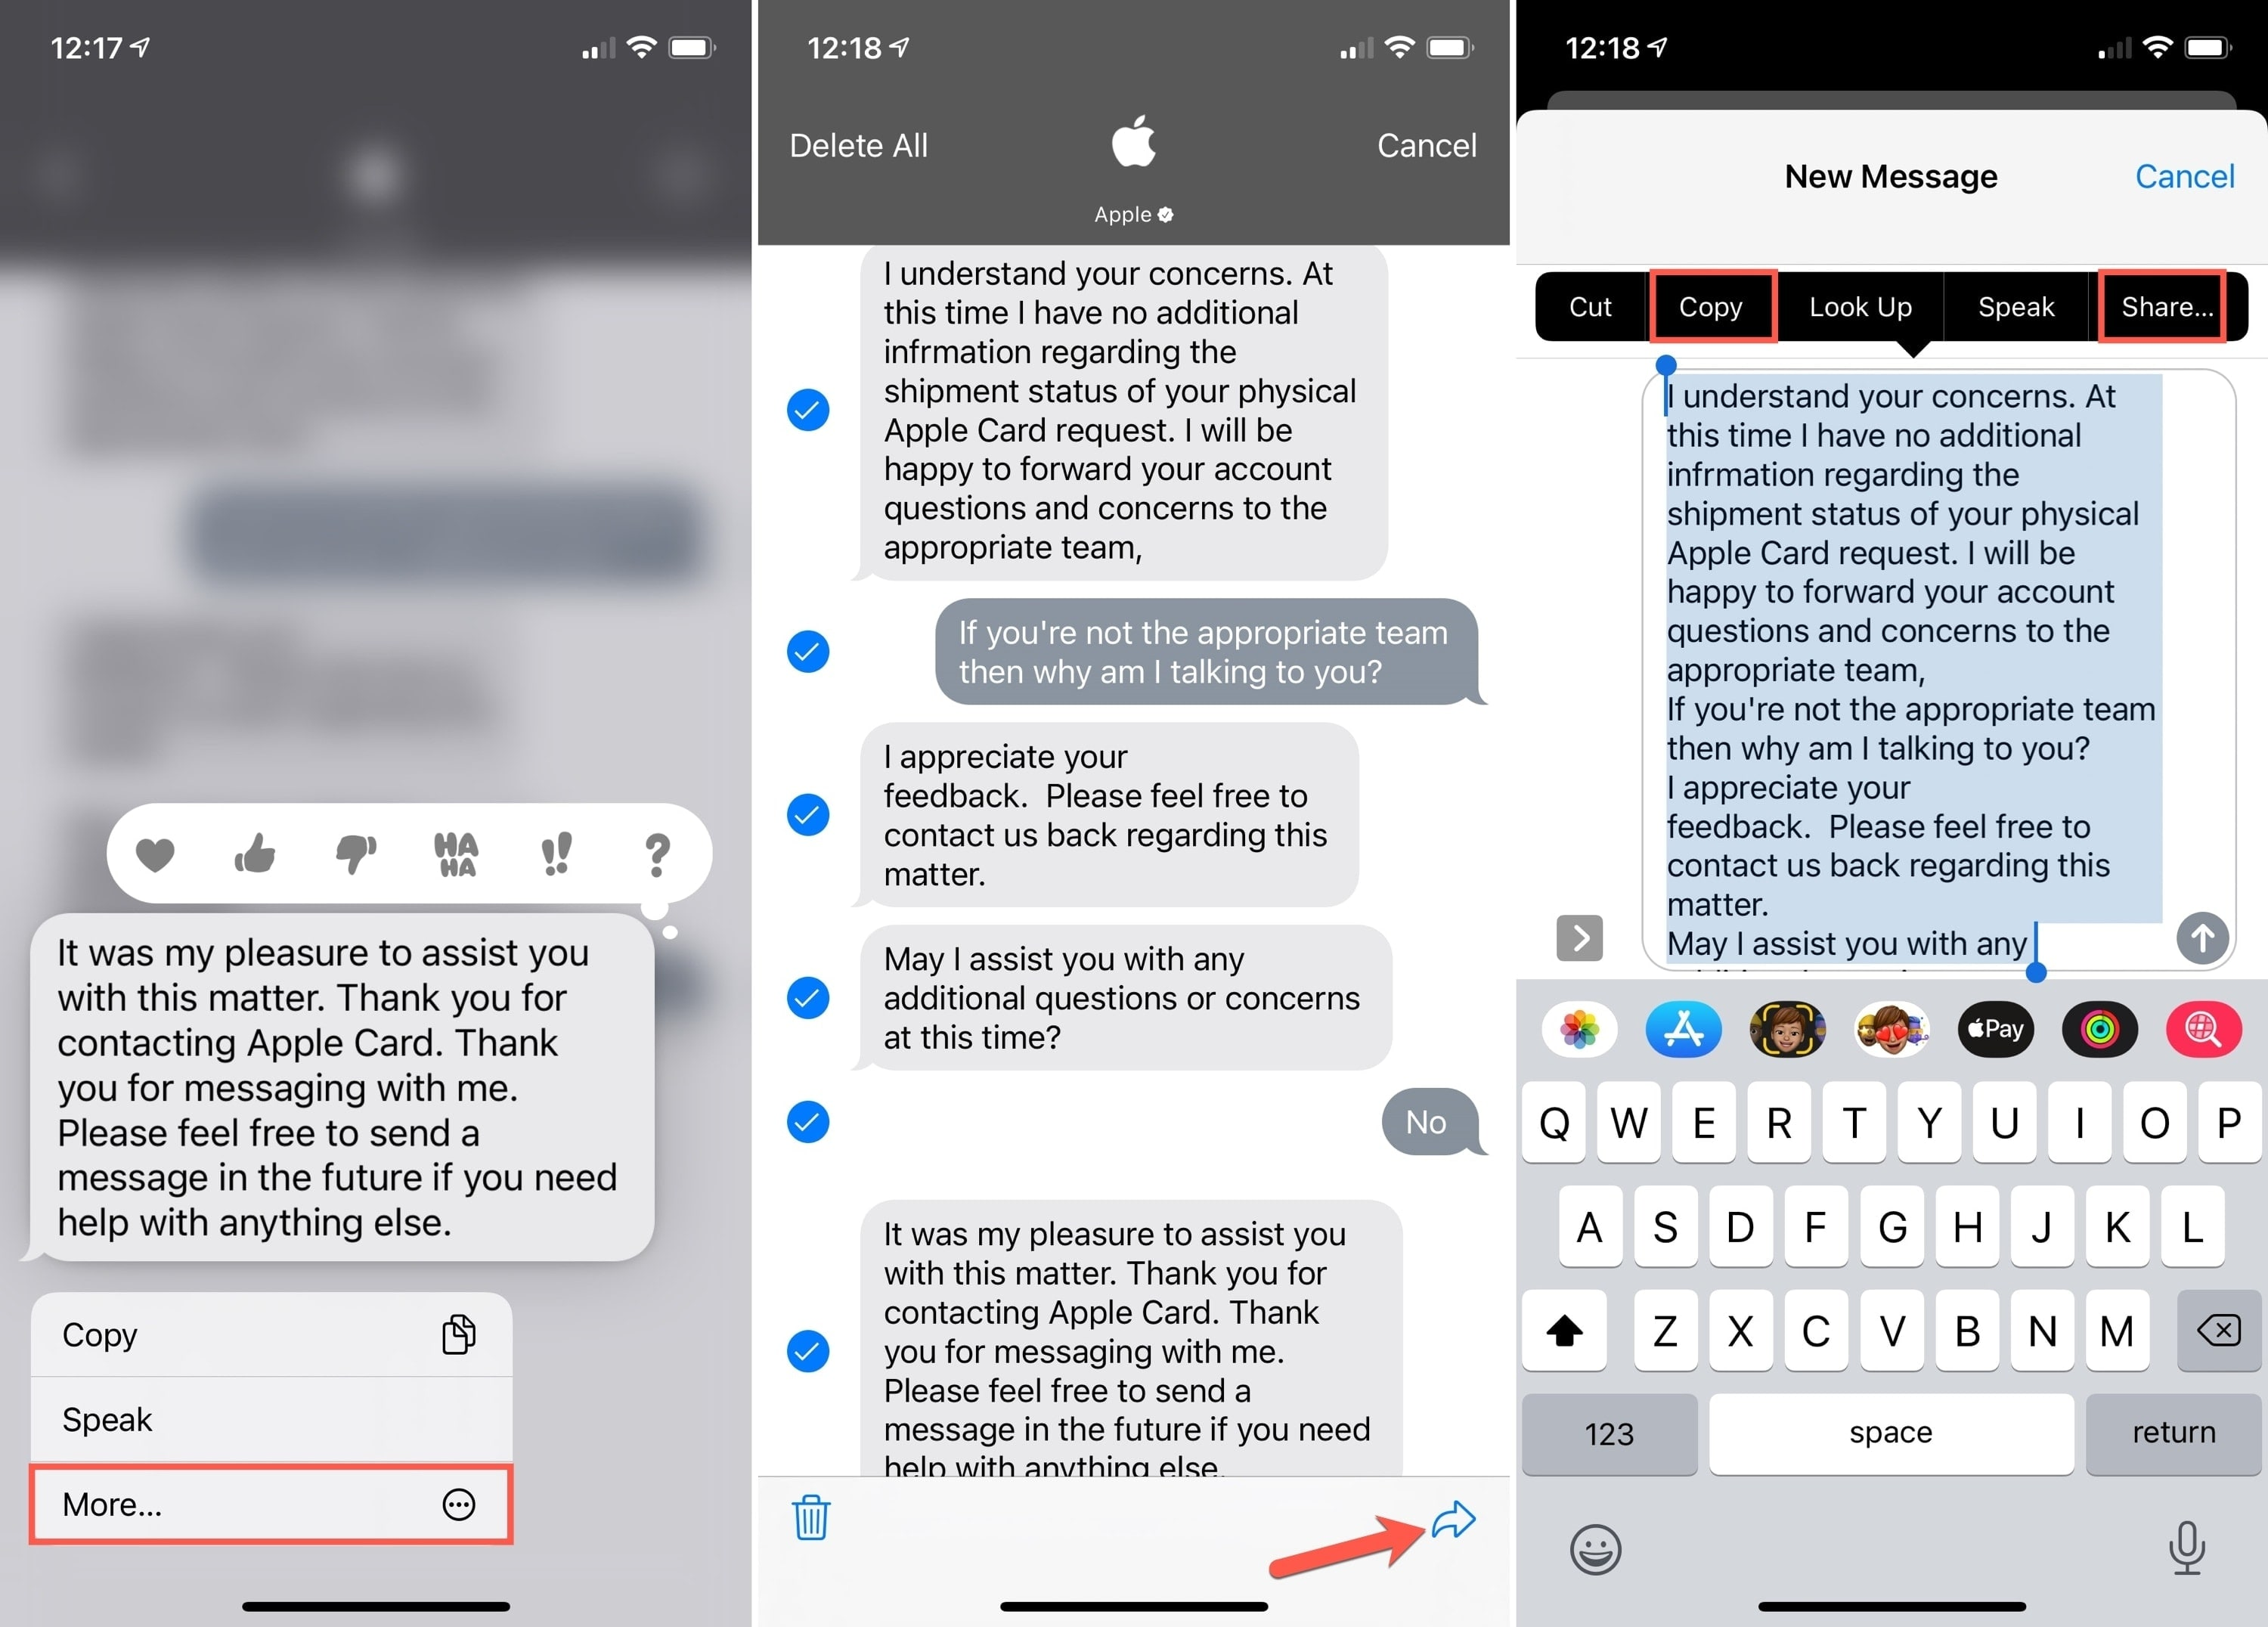 Messages Select All and Copy or Share on iPhone